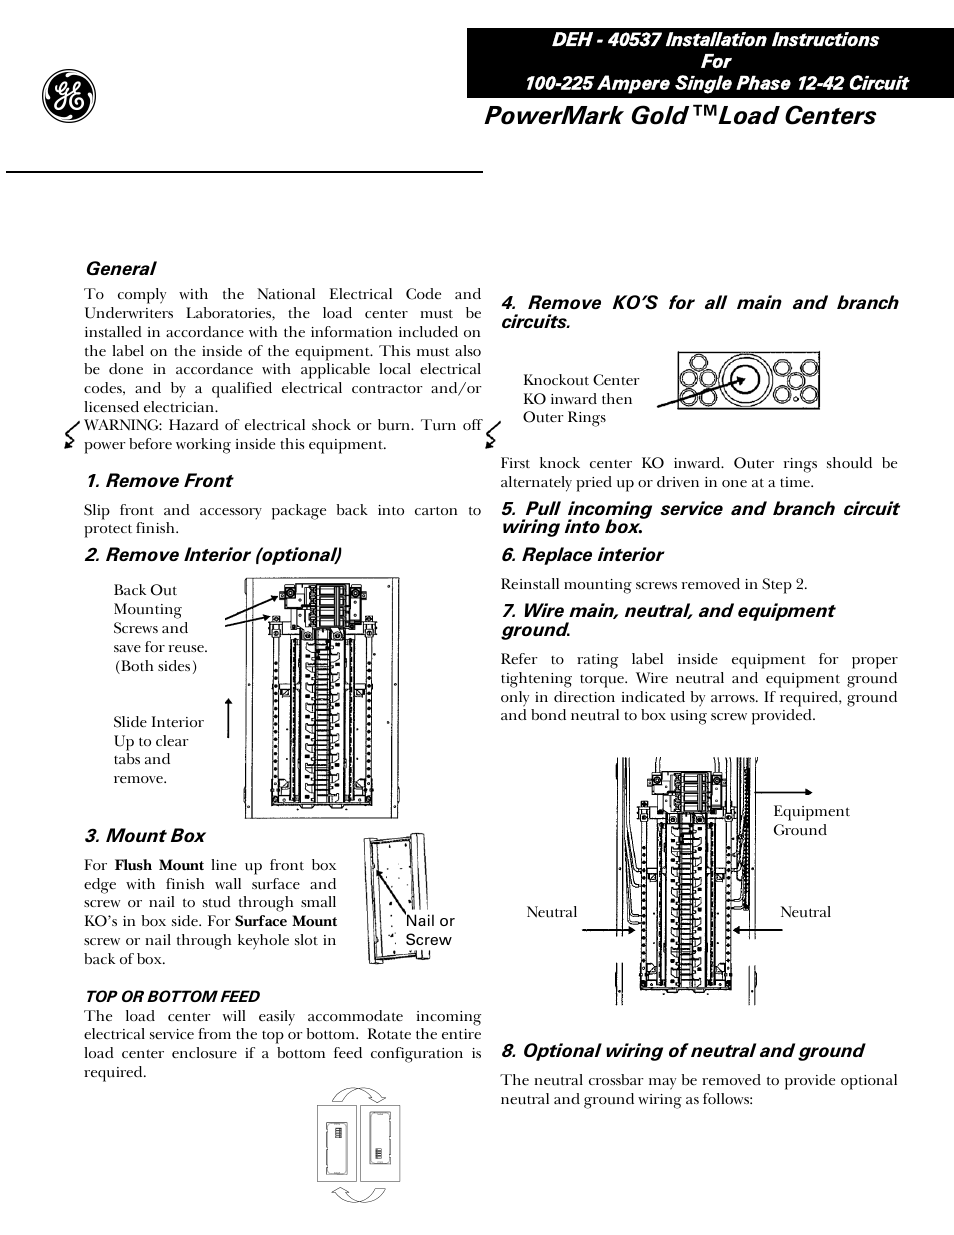 Ge Load Center Wiring Diagram Library Tl412cp Industrial Solutions Power Mark Gold Centers User Manual 4 Pages